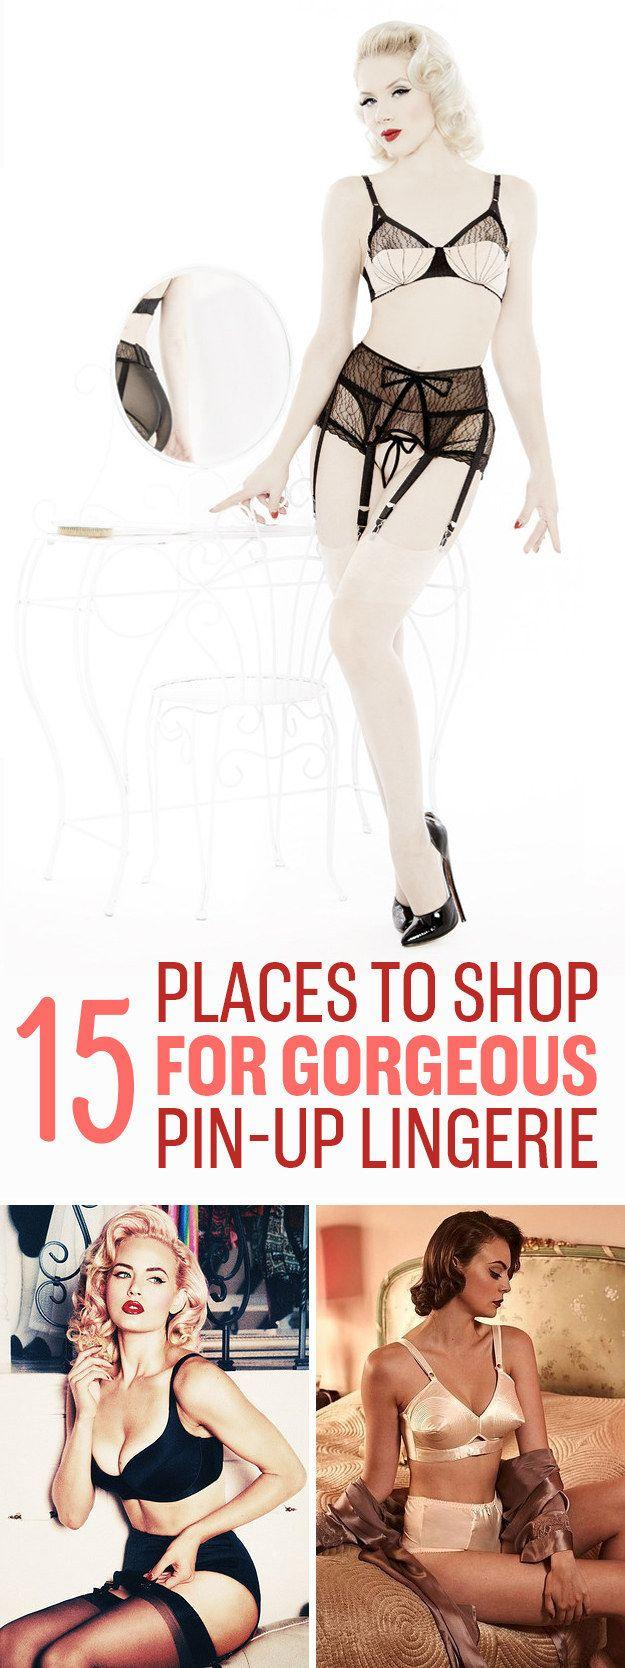 Mariage - 15 Vintage-Inspired Lingerie Stores You'll Wish You Knew About Sooner